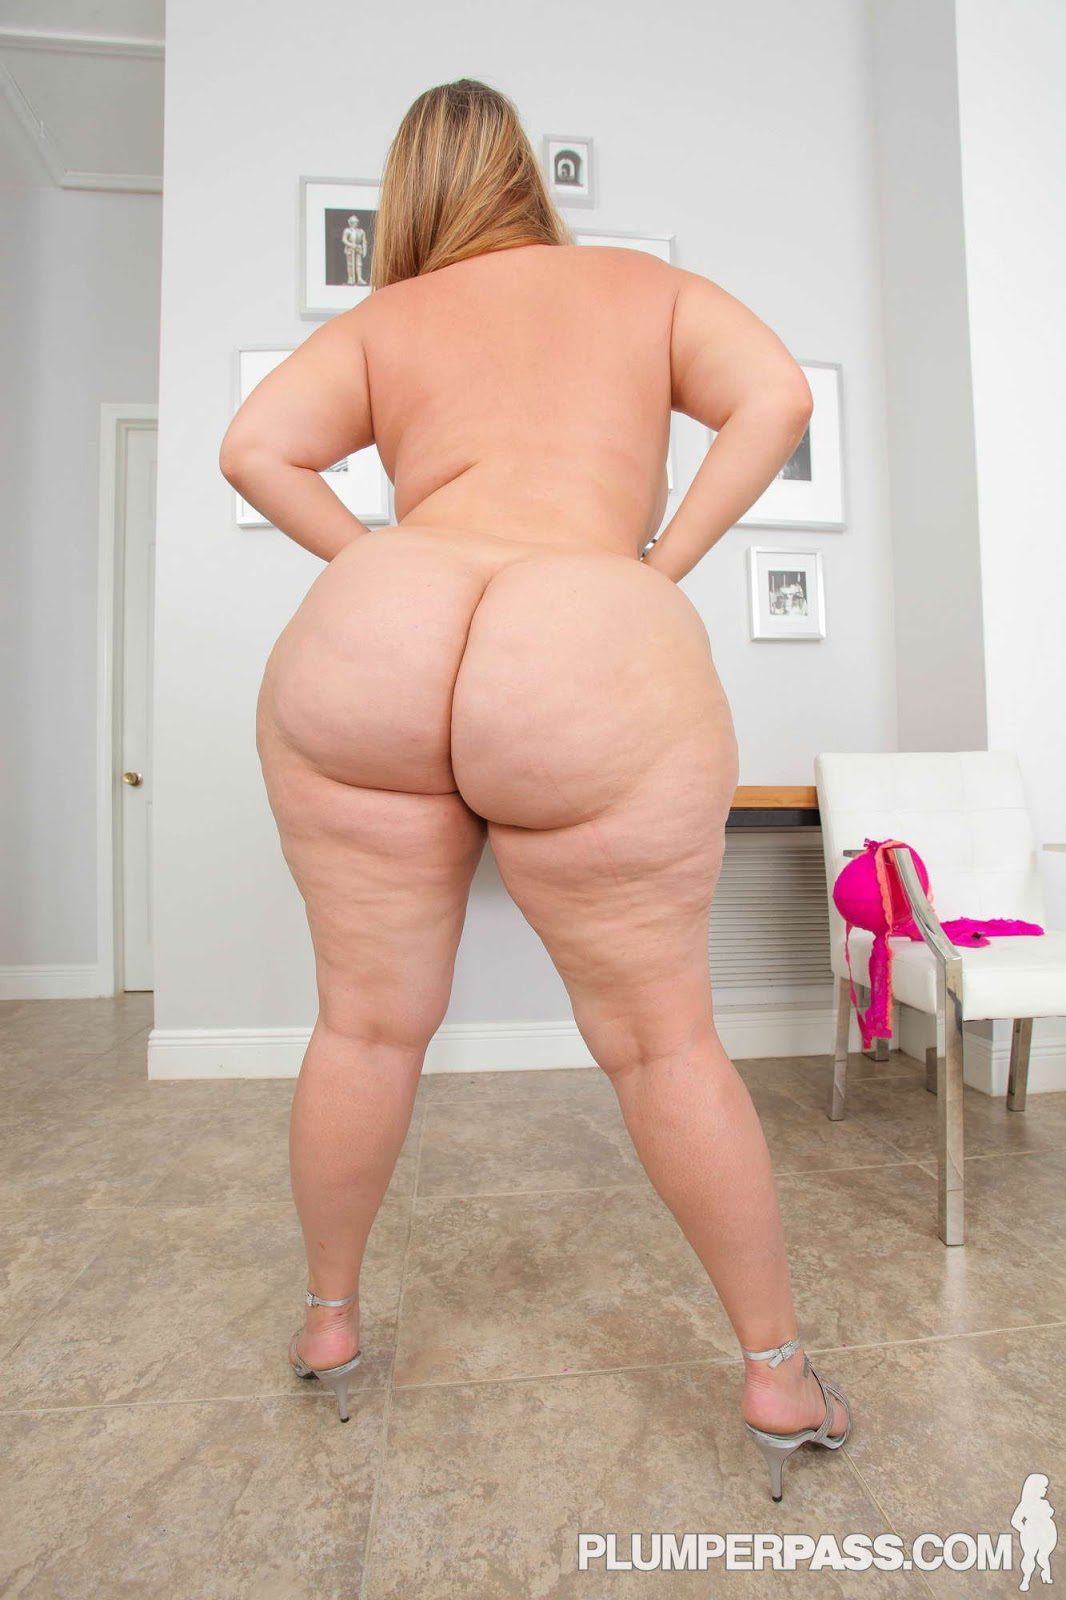 Large ass bbws naked good